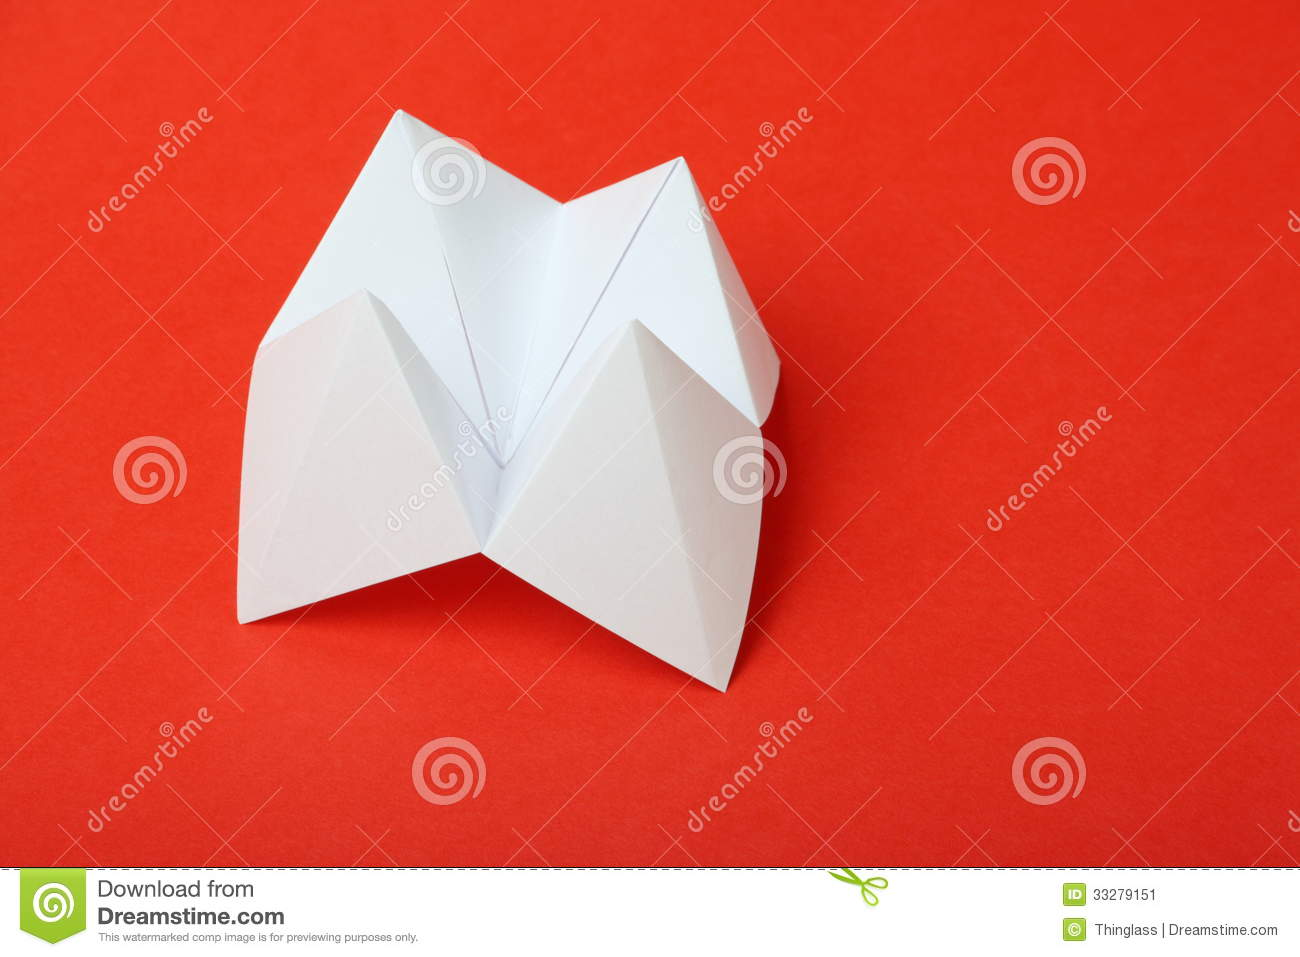 Origami Fortune Teller Stock Image Image Of Risk Blank 33279151